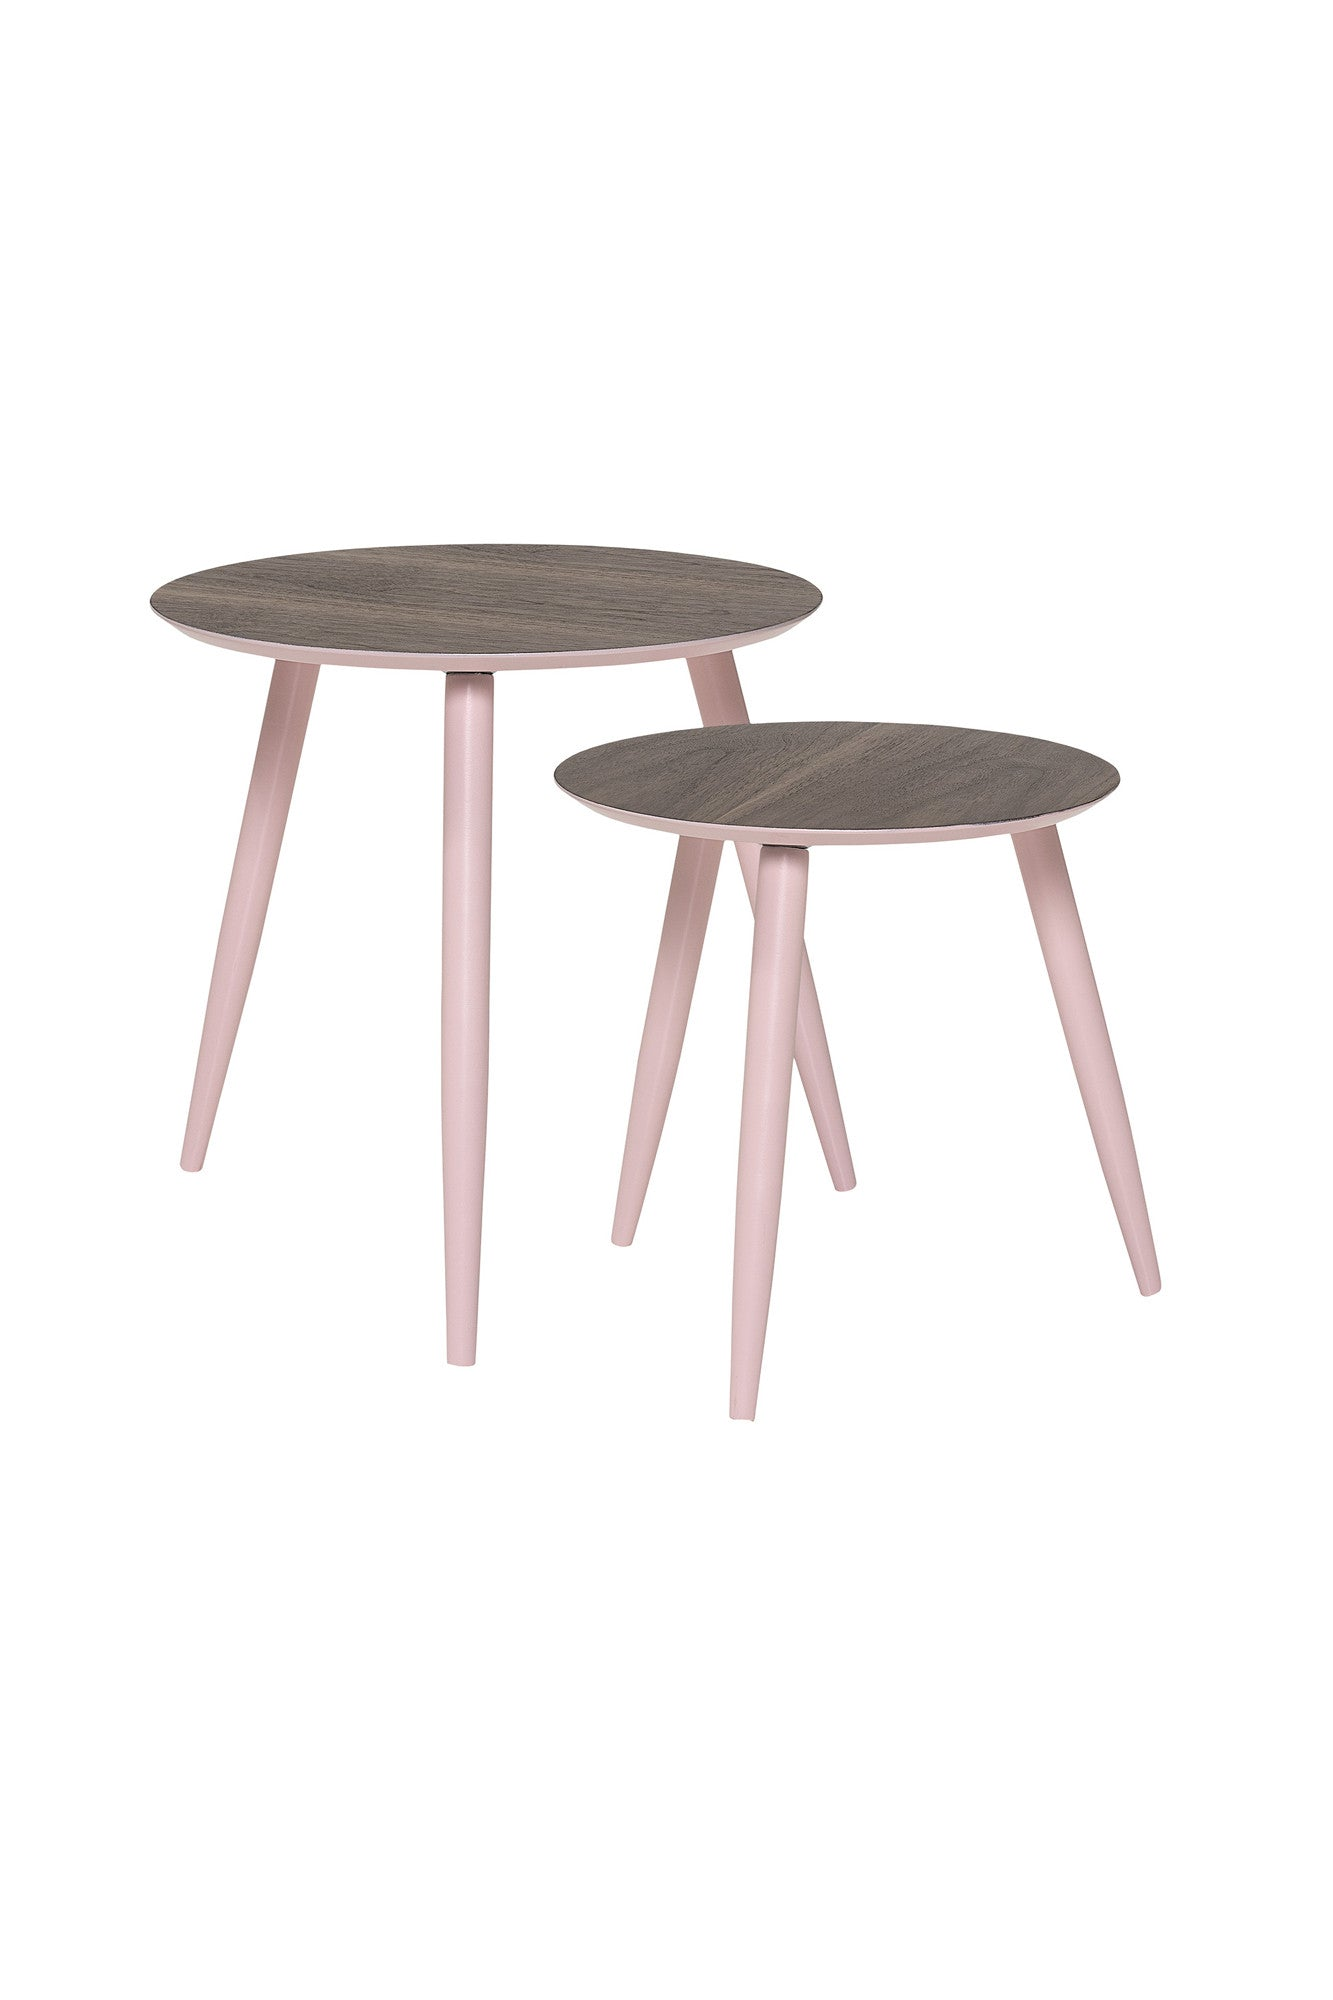 Asta Coffee Table, Small Furniture, Bloomingville - 3LittlePicks